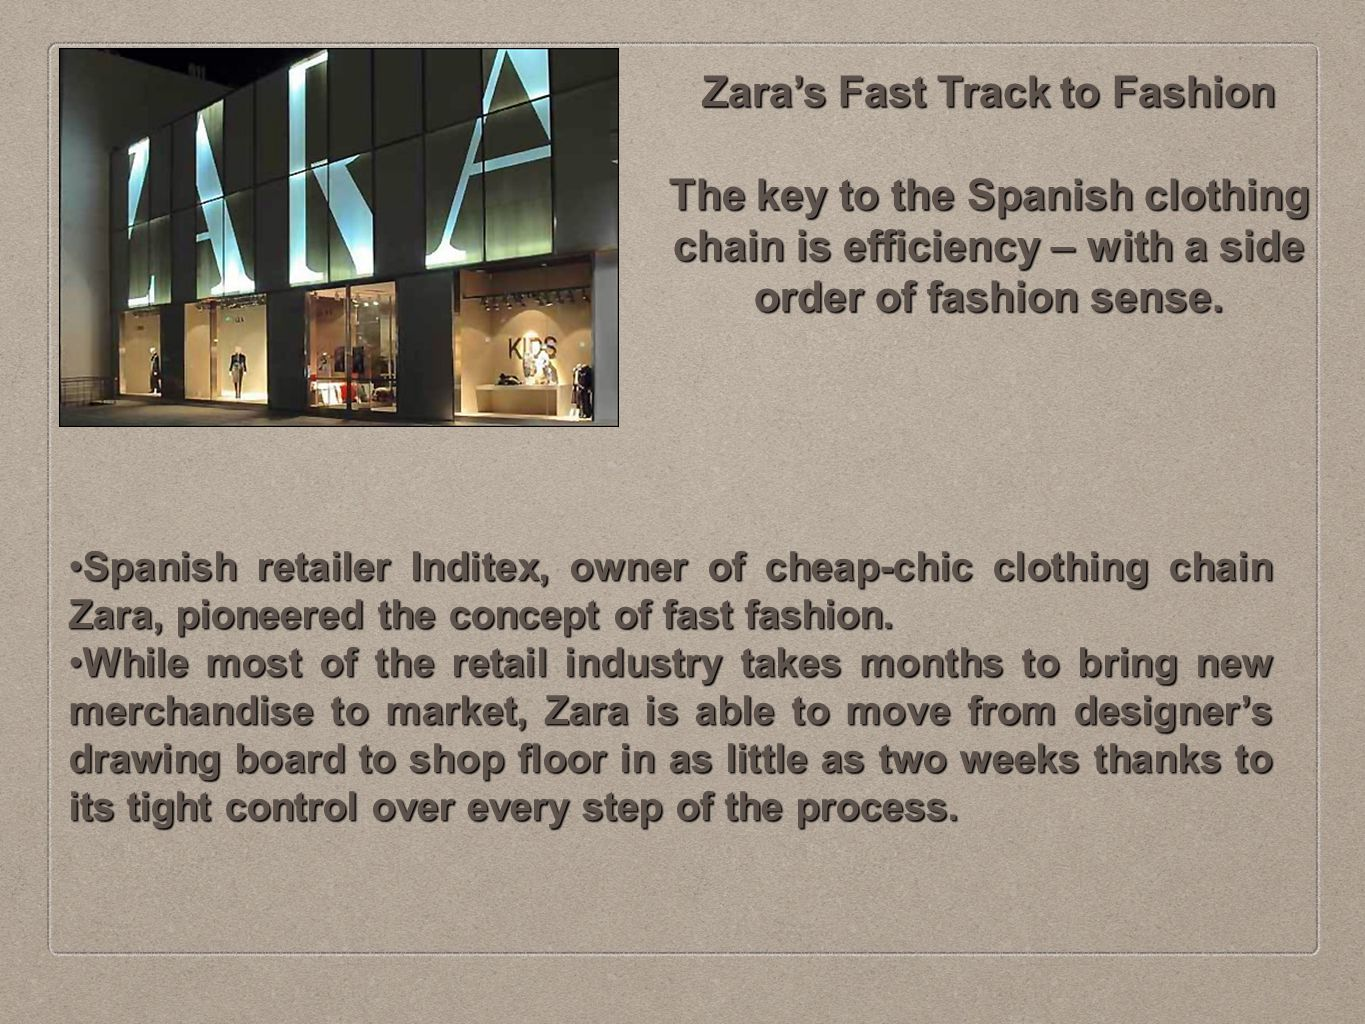 zara fast fashion study of supply Zara's rapid supply chain has changed retailing  supply chain and fast fashion the pace of zara's supply chain has so  templates and supply management.